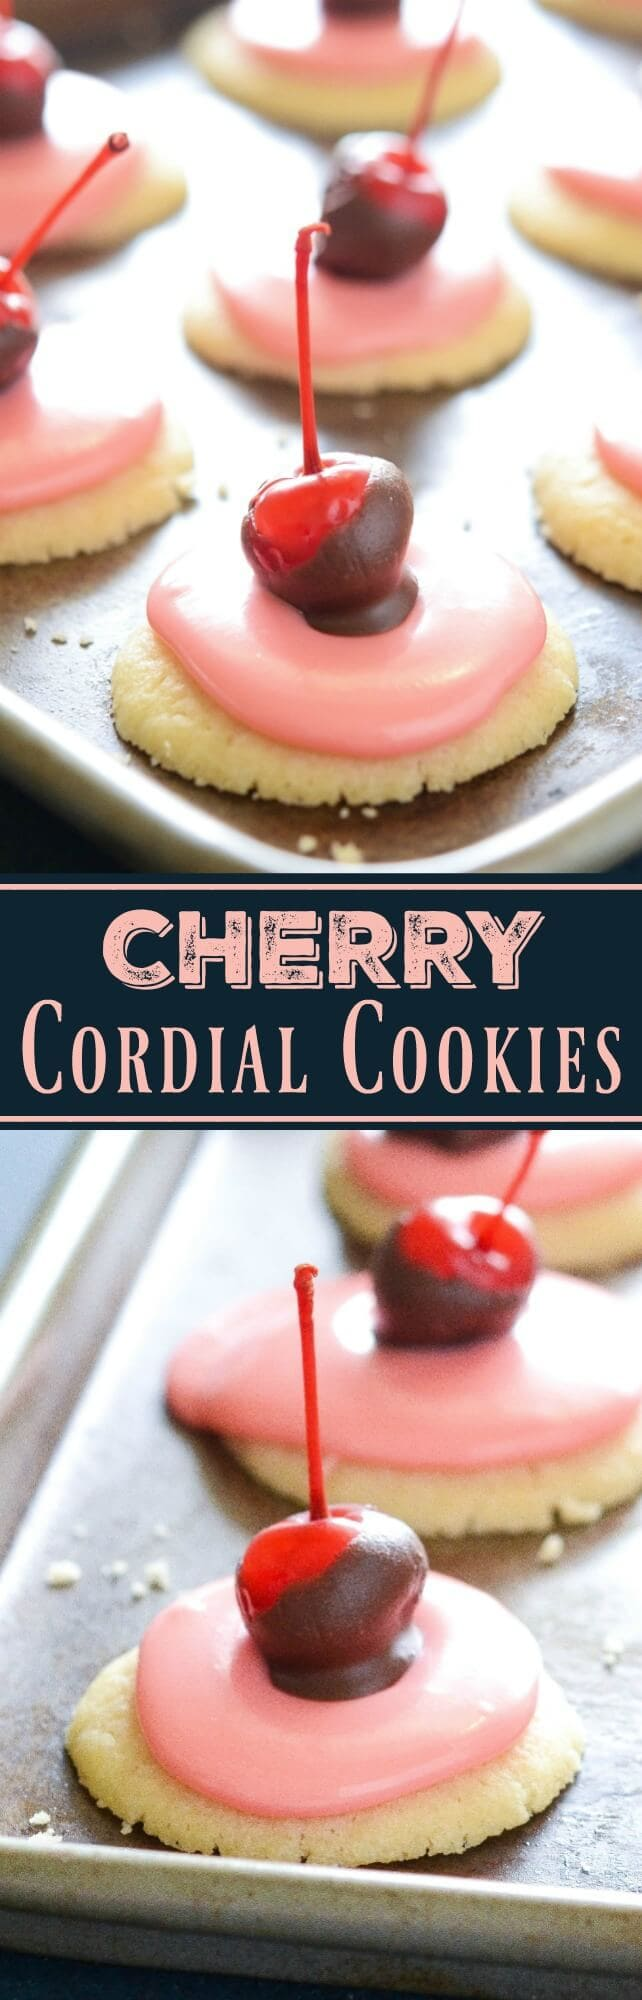 Cherry Cordial Cookies: these intricate looking cookies are surprisingly easy to make. You start with a soft shortbread cookie base, spread them with a creamy cherry cordial icing and top them with a chocolate cherry.